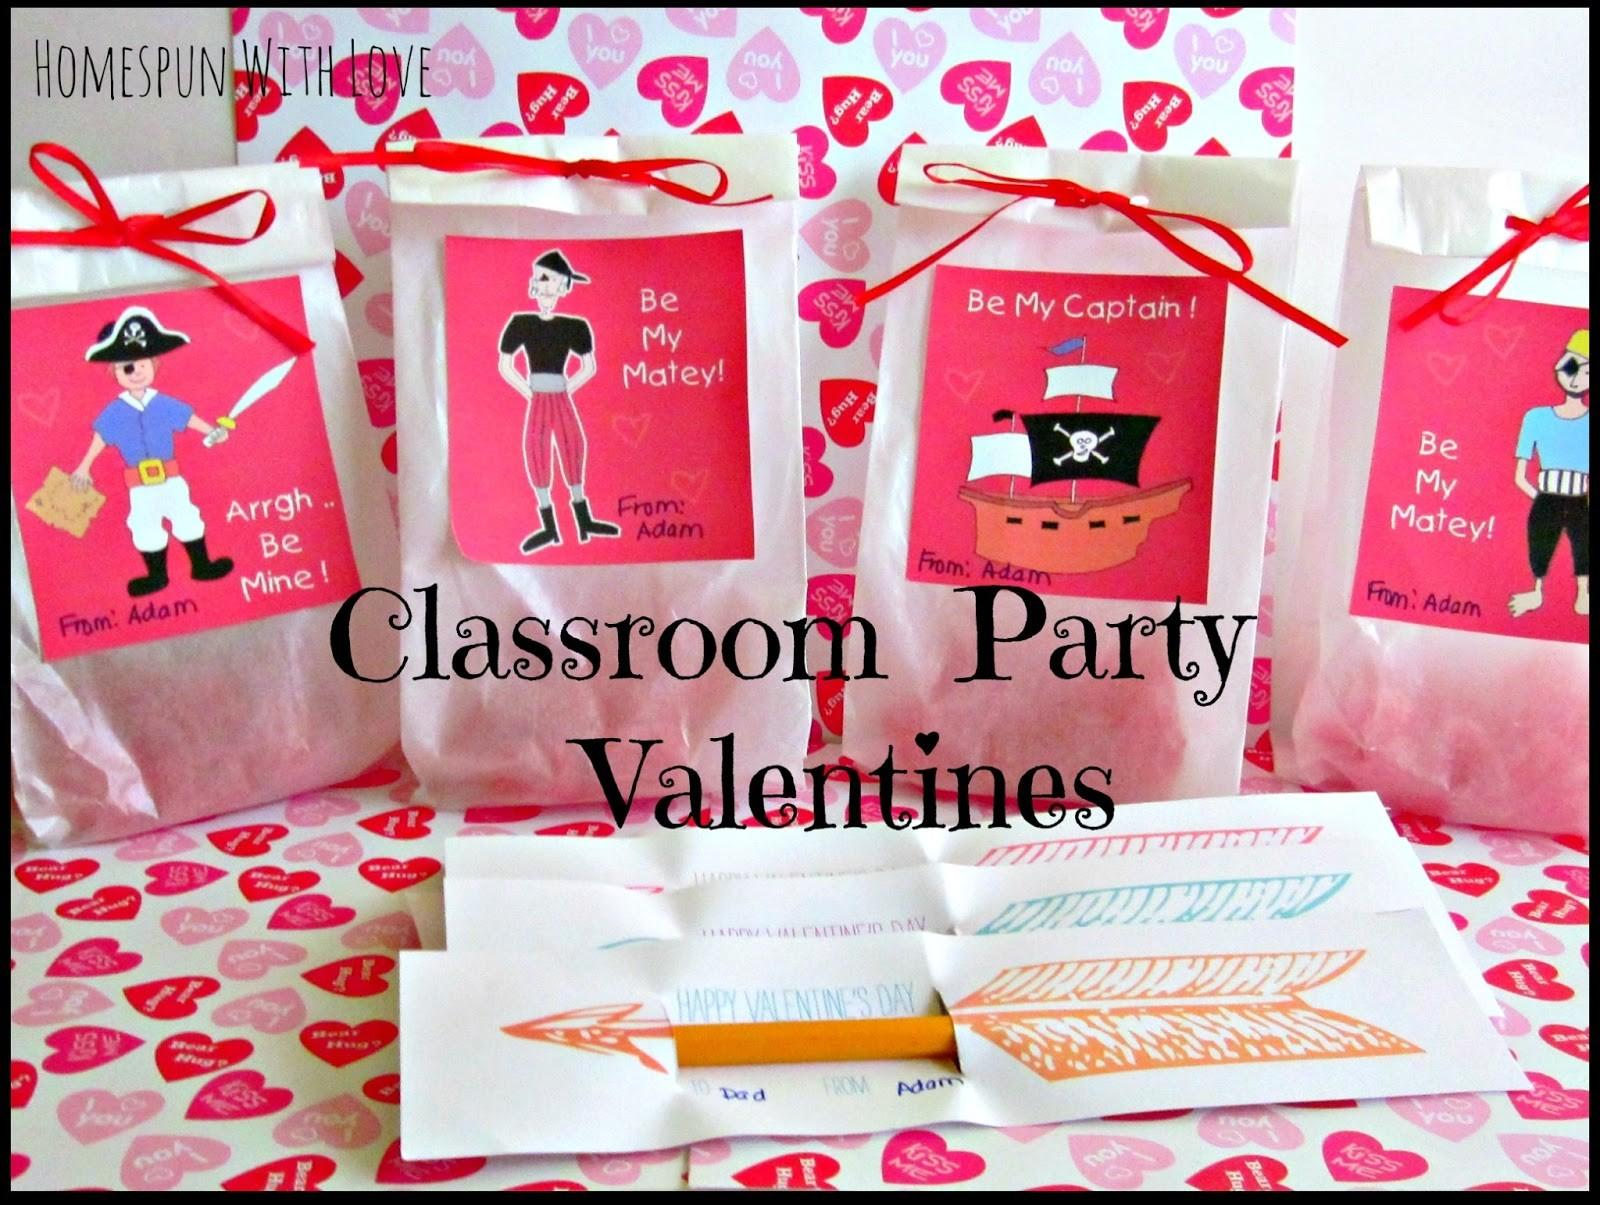 Homespun Love Classroom Party Valentines